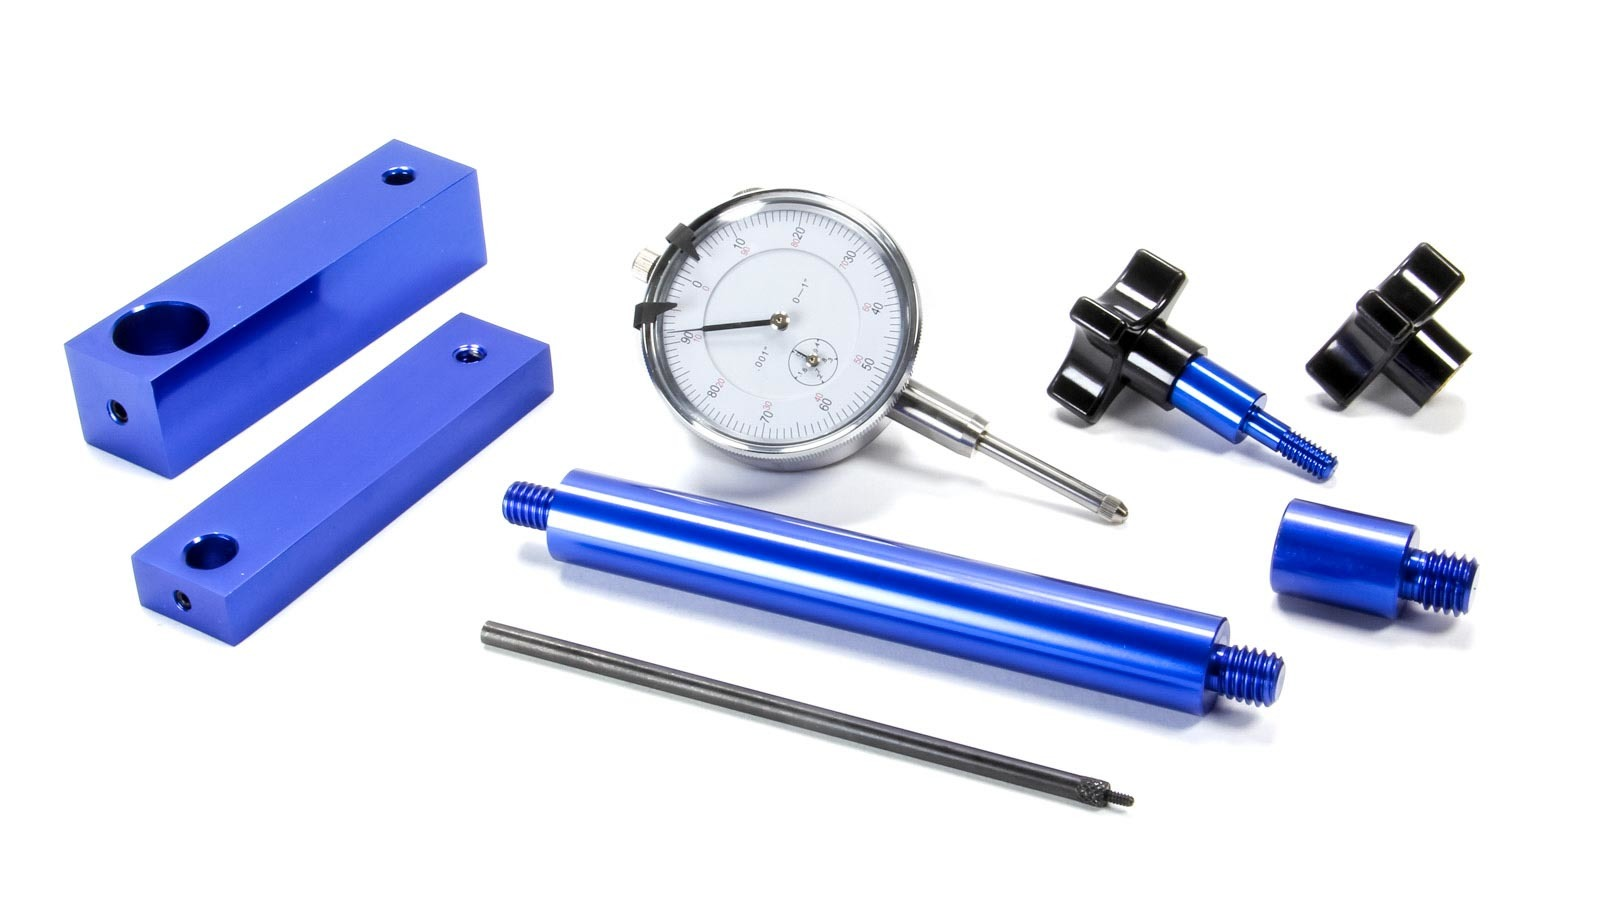 Proform 66830 Camshaft Checking Fixture, 0.001 in Dial Indicator, Dial Indicator Stand, 1/2 in and 7/16 in Adapters, Aluminum, Blue Anodized, Heads Off, Kit